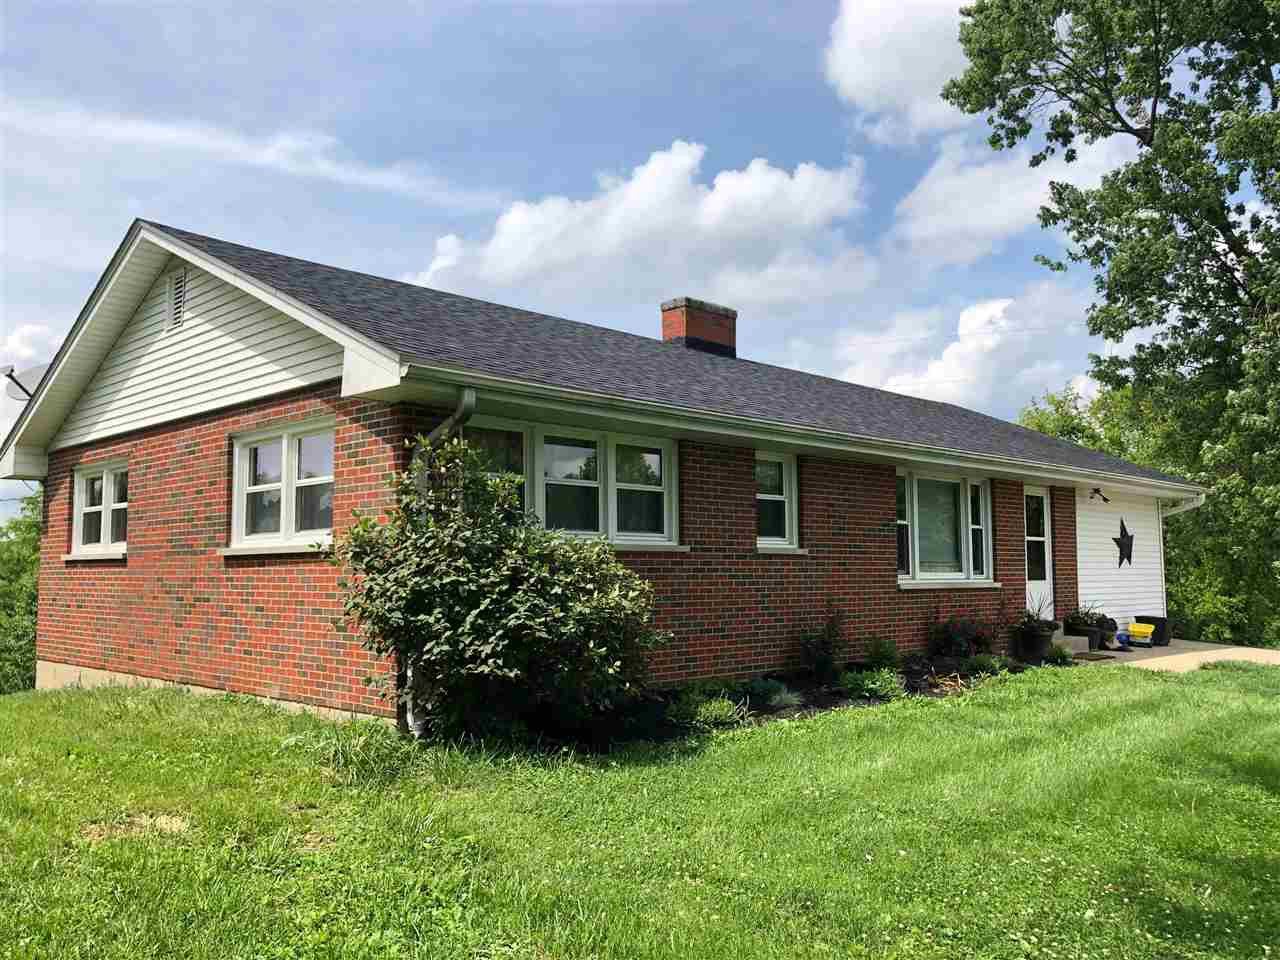 Photo 2 for 785 Highway 127 S Owenton, KY 40359